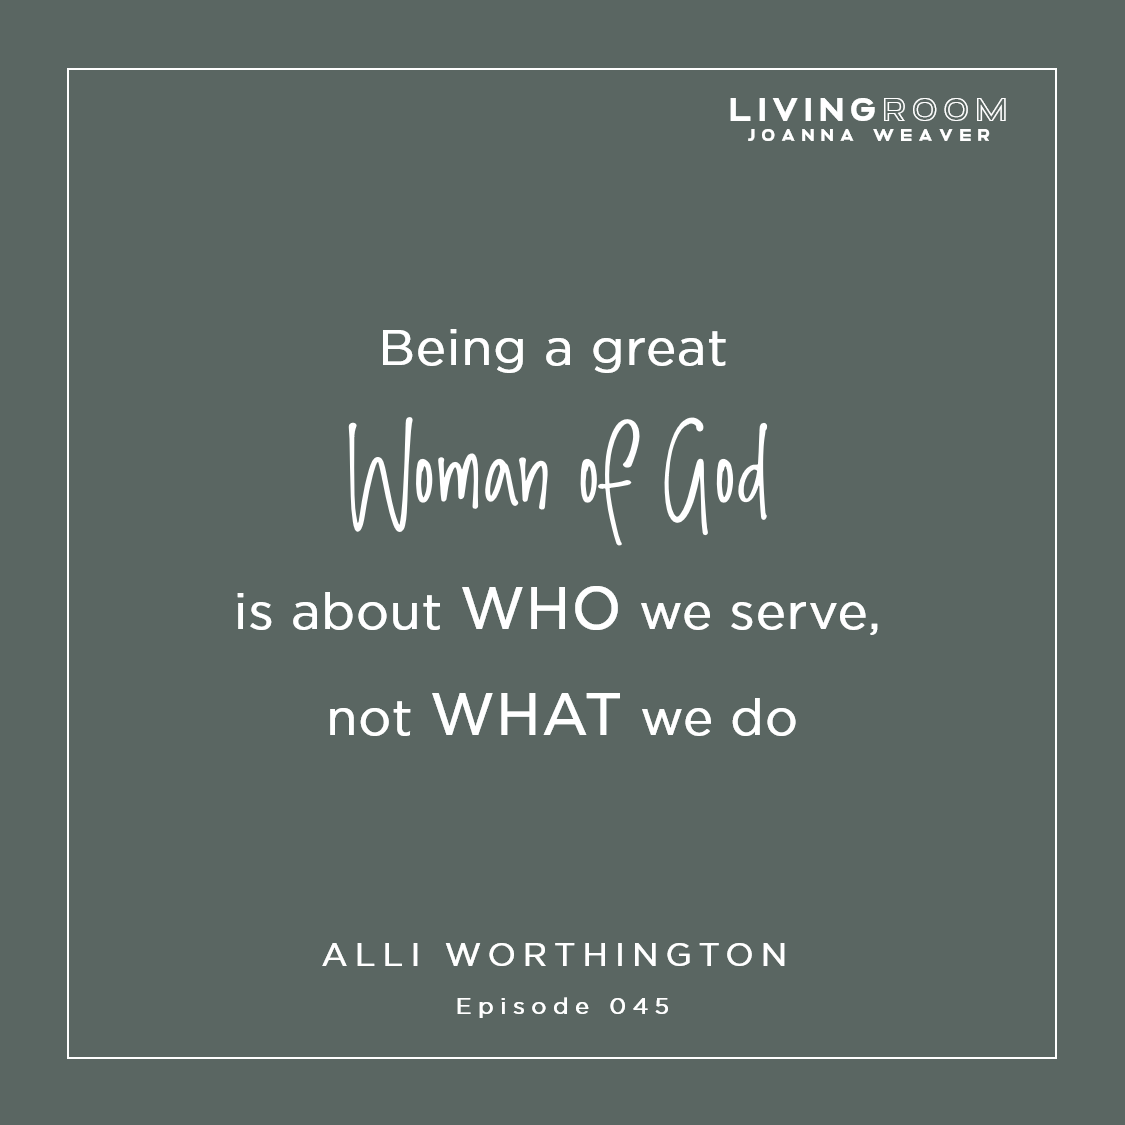 """Being a great woman of God is about who we serve, not what we do."" - Allie Worthington - TLR 045"